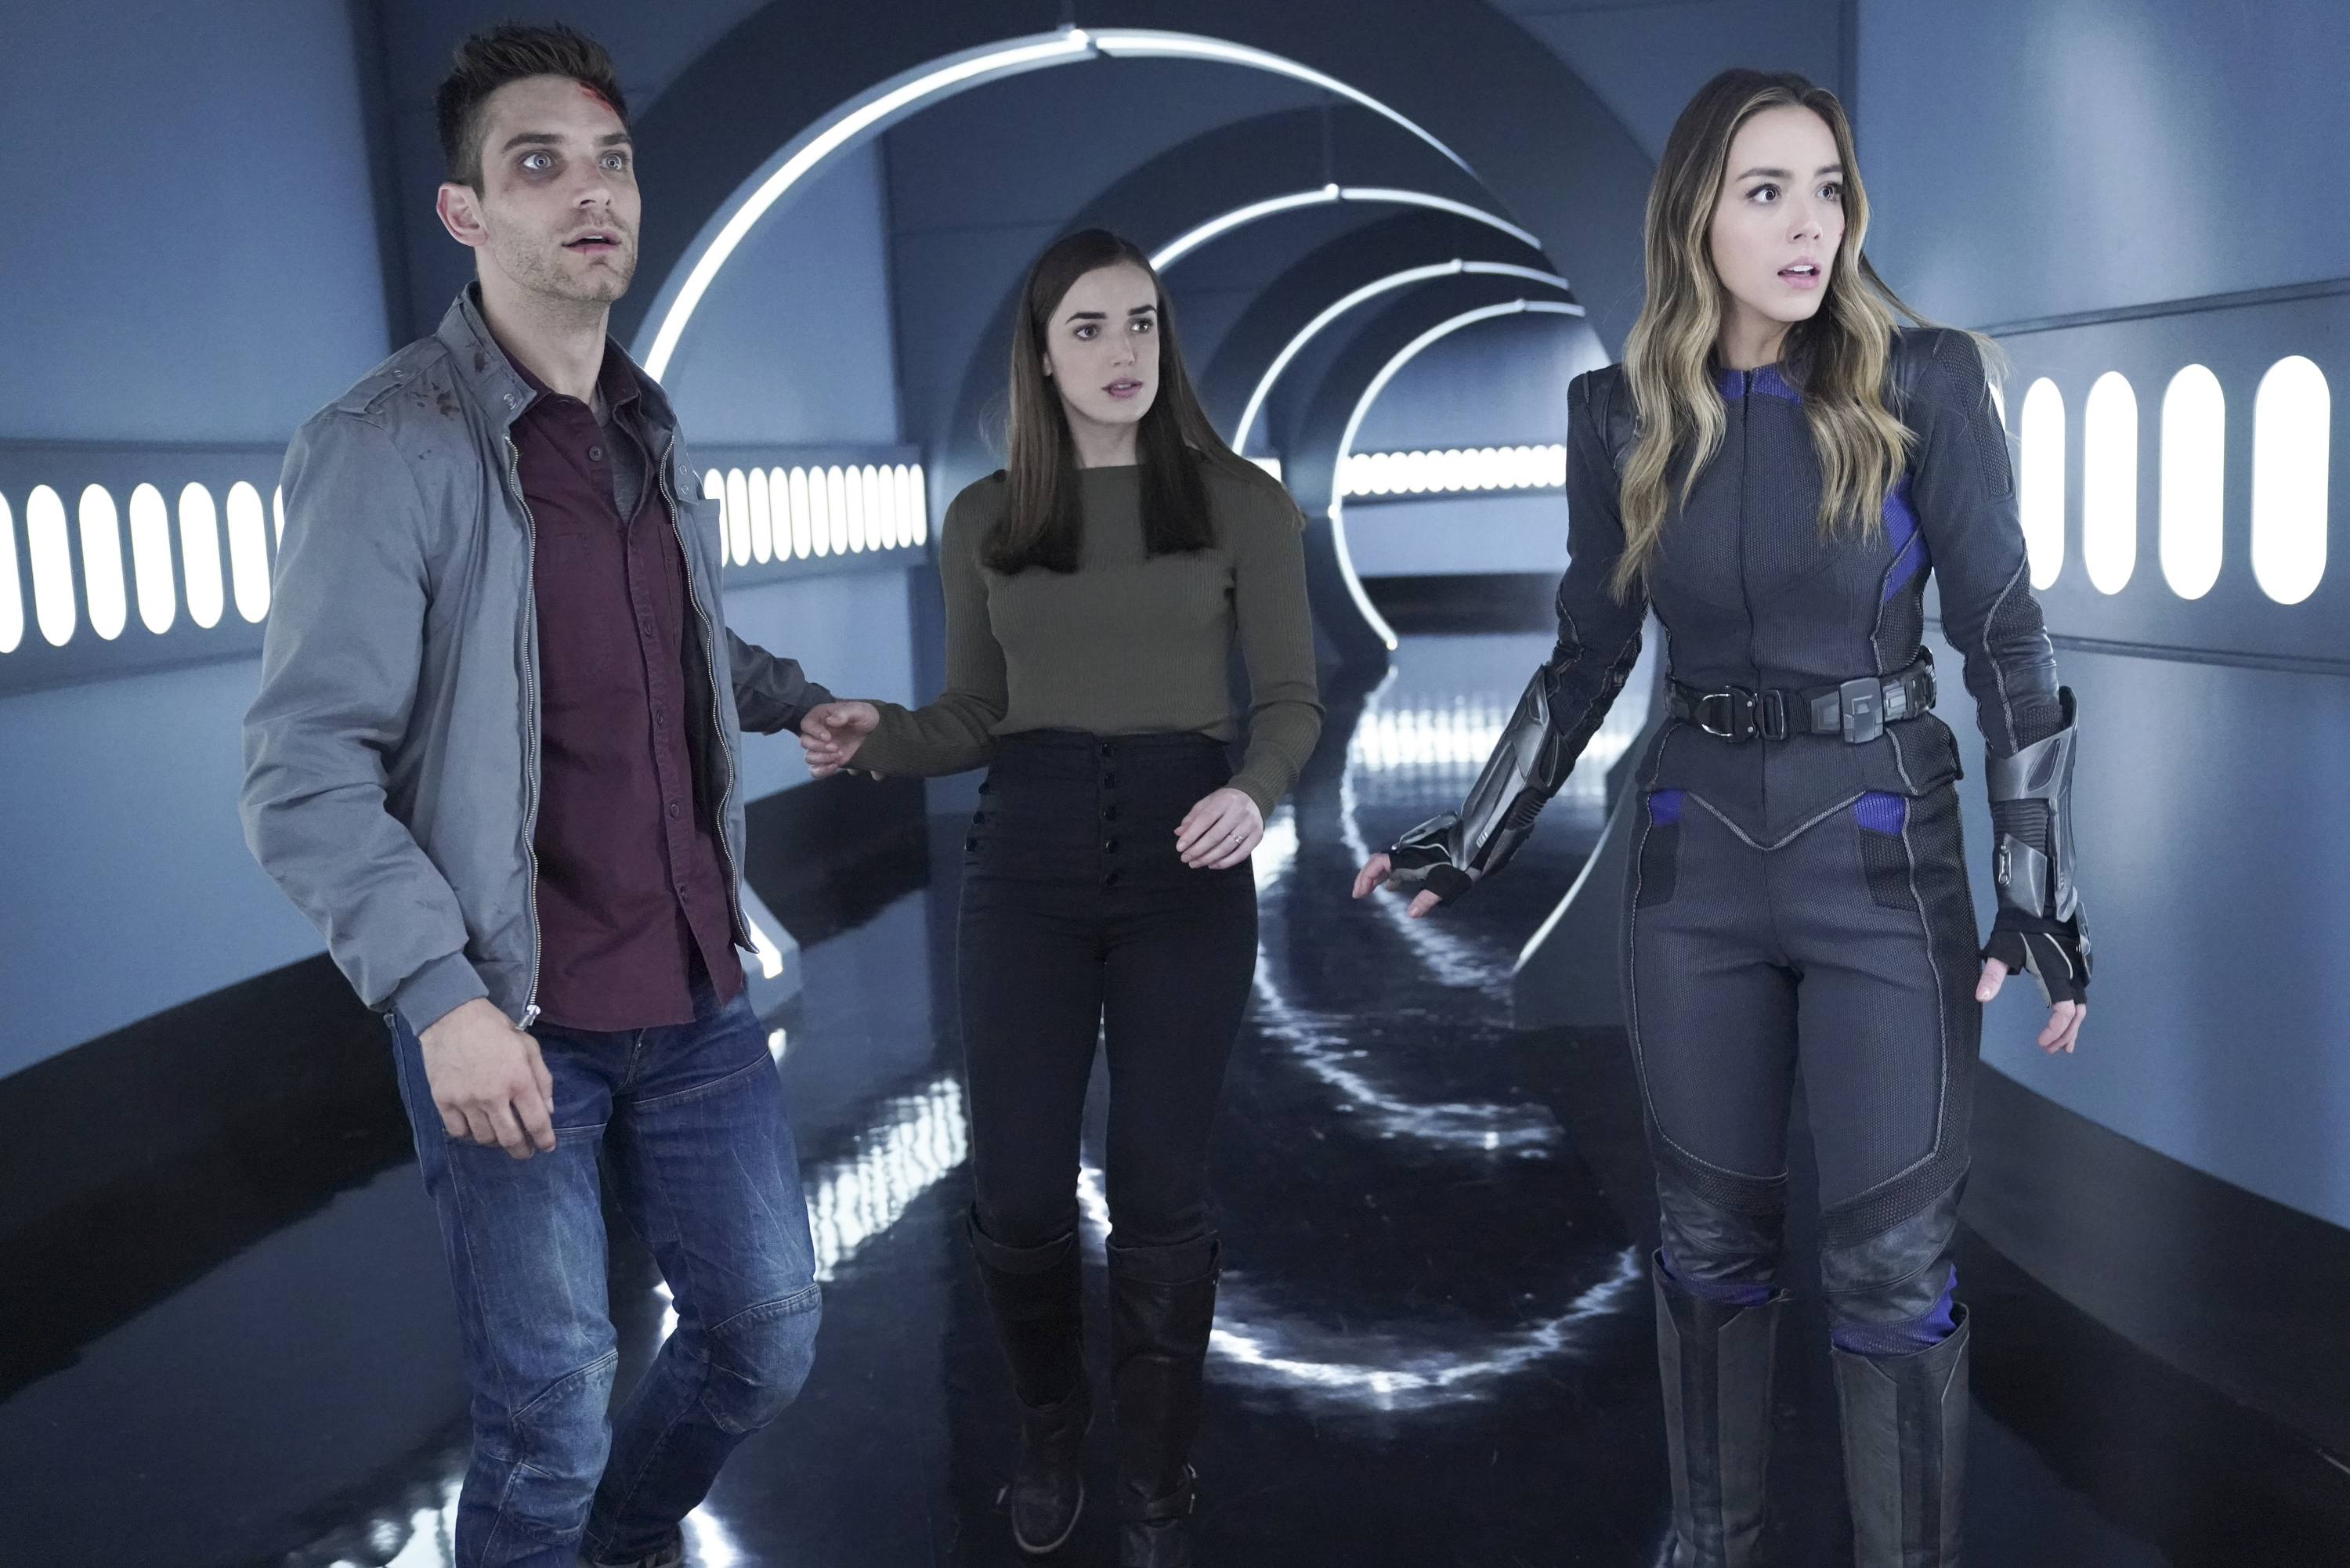 Marvel's Agents of S.H.I.E.L.D. Season 7 12